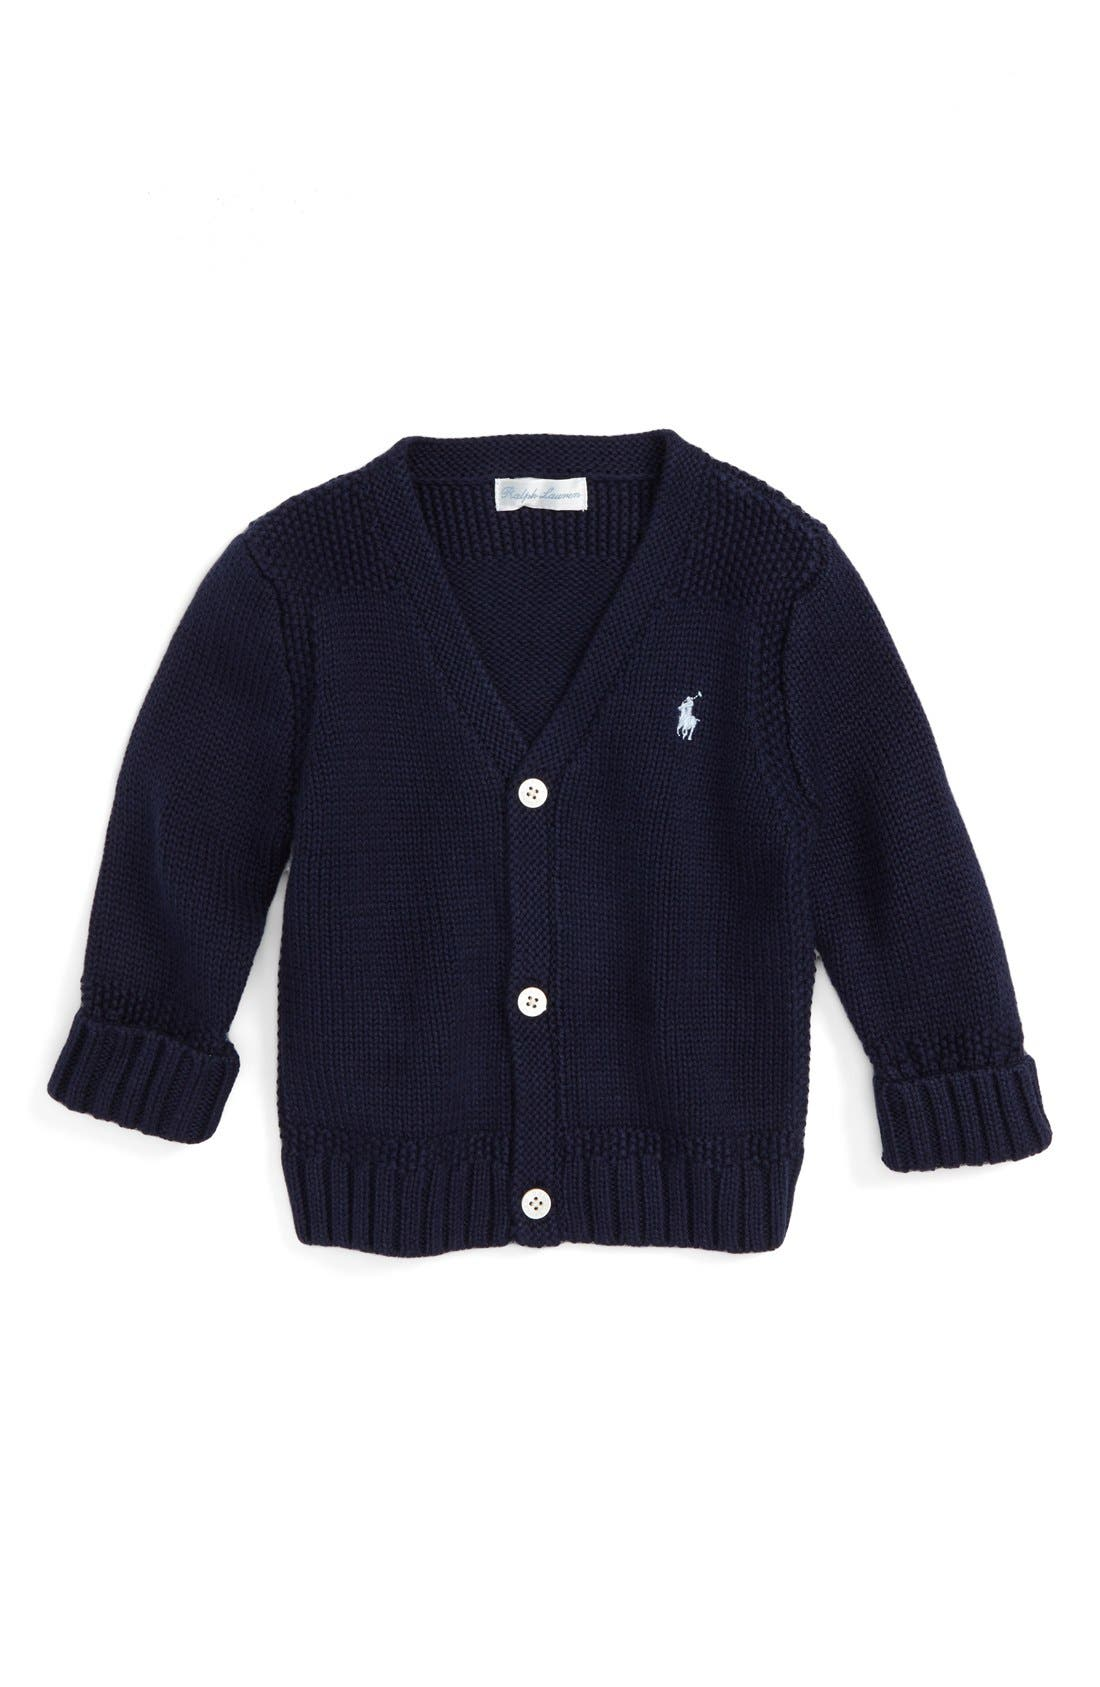 V-Neck Cardigan,                             Main thumbnail 1, color,                             NAVY